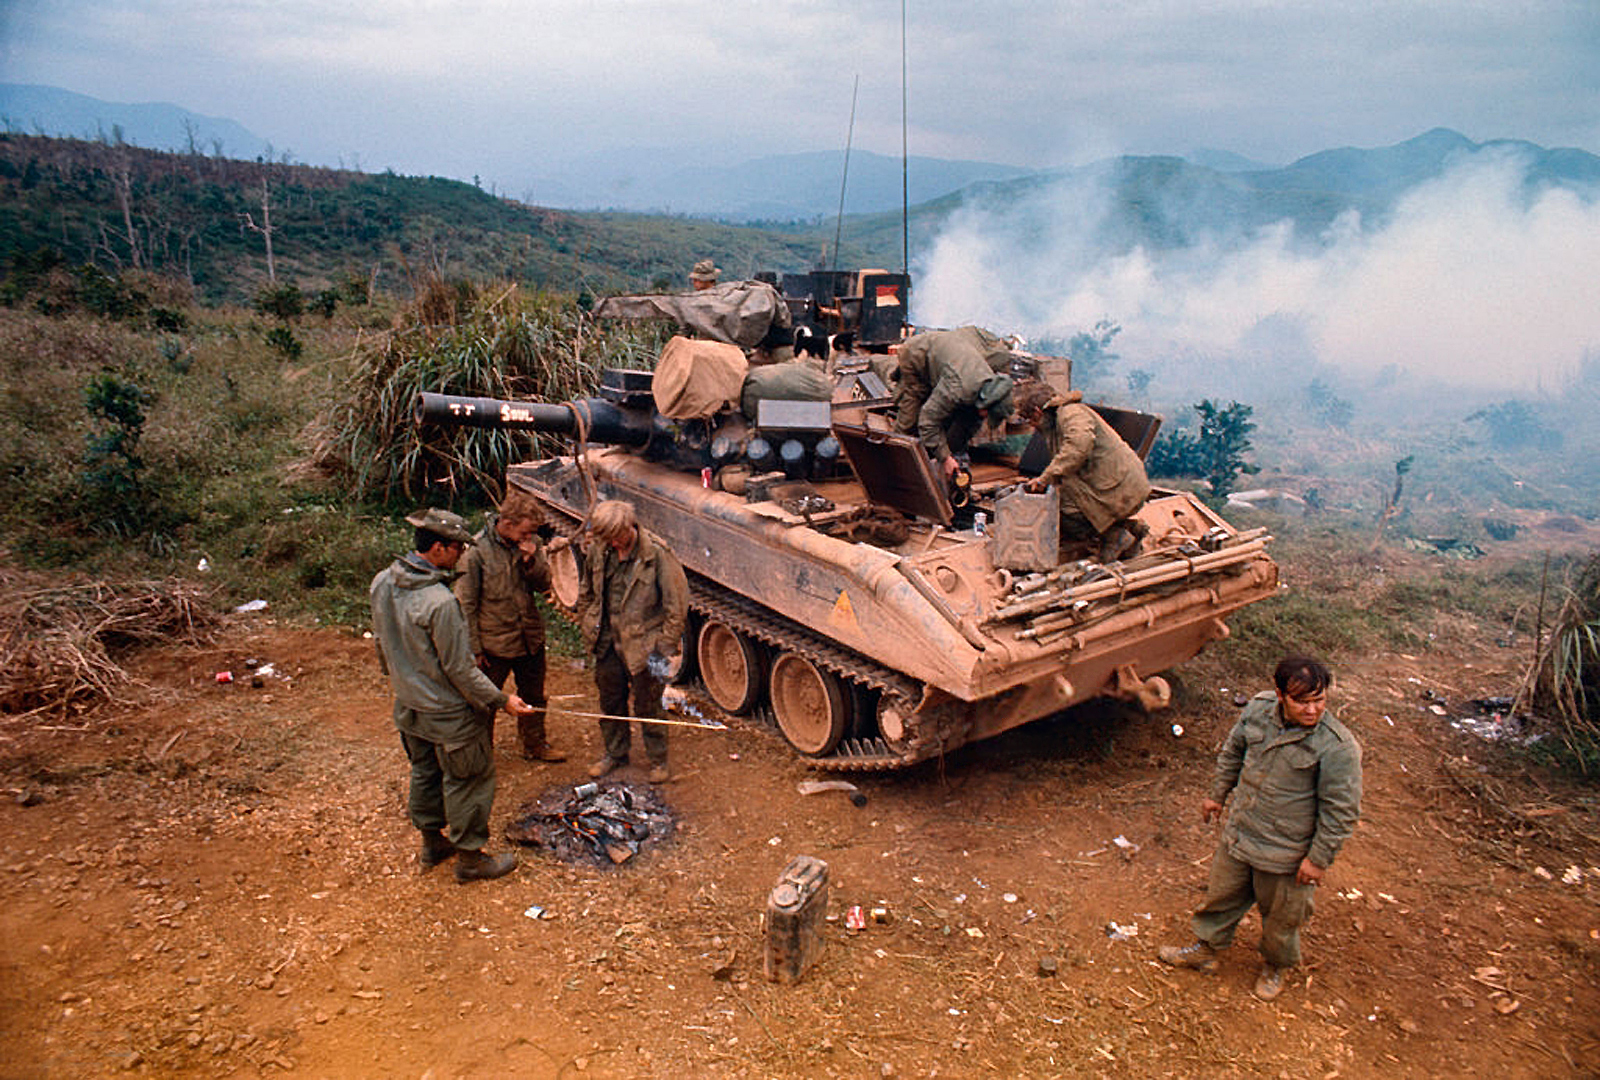 M551 Sheridan near Khe Sahn during Operation Dewey Canyon II/Lam Son 719. 7 Feb 1971.